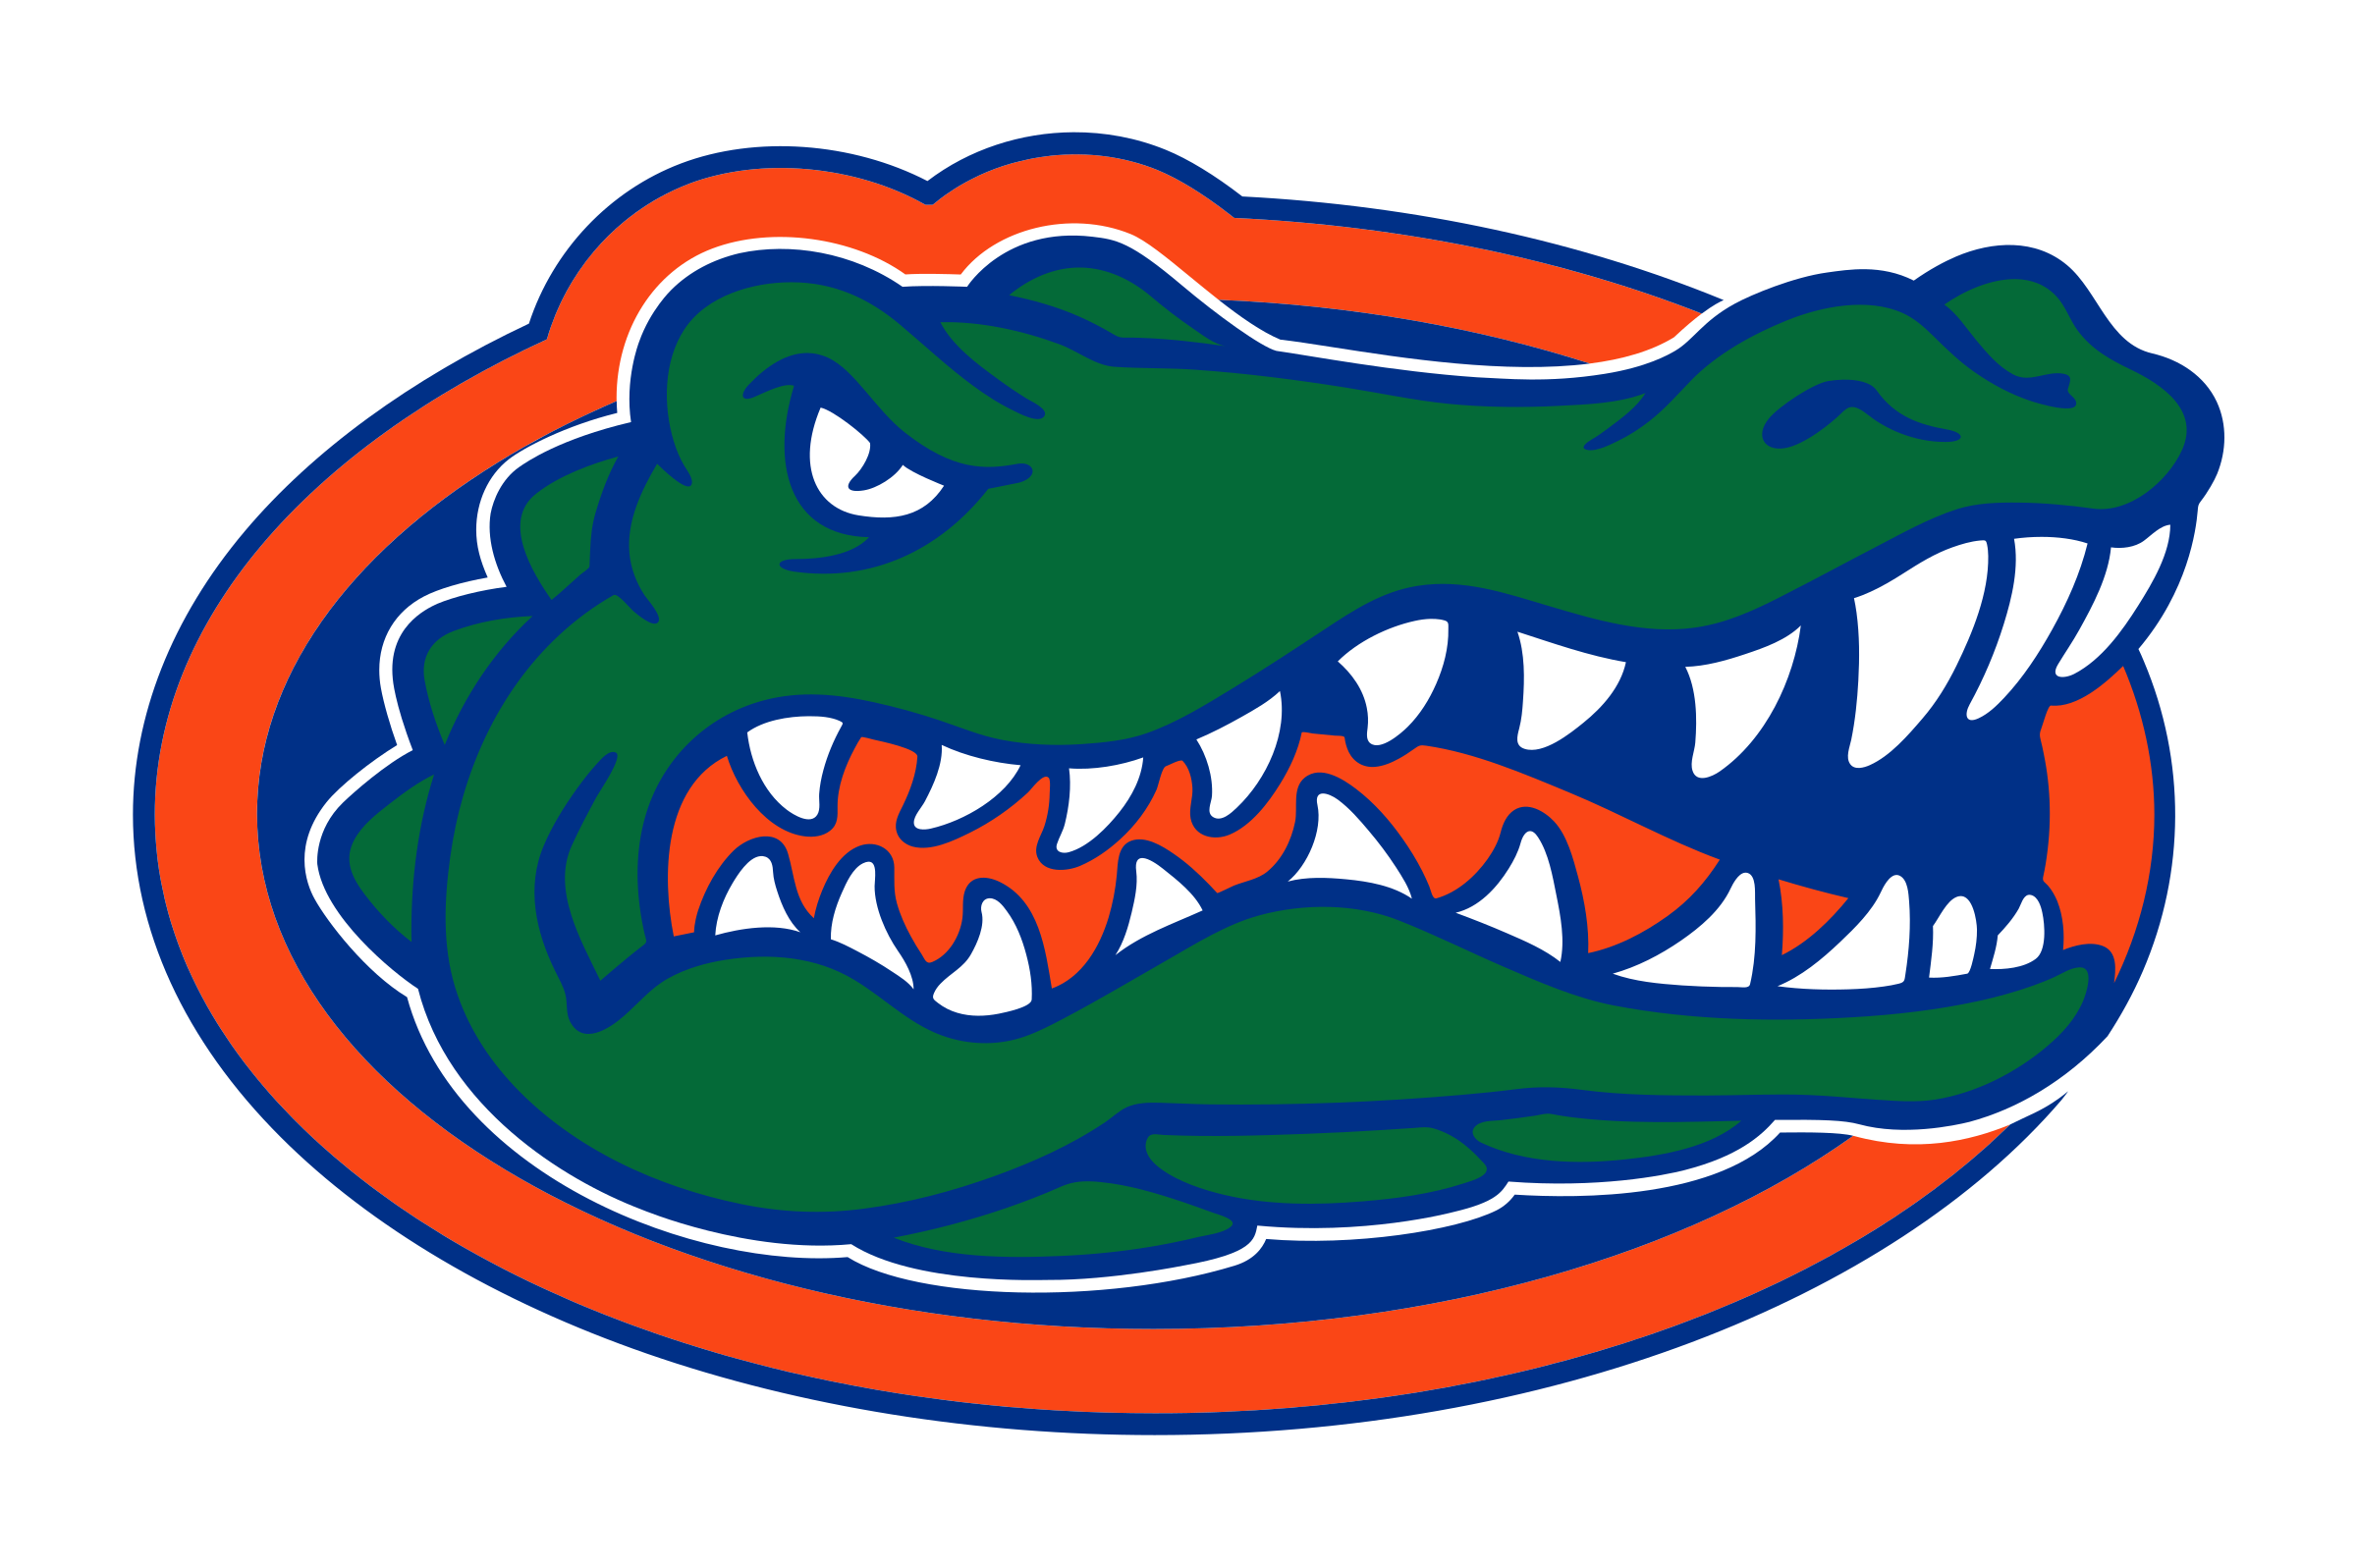 Florida Gators Logo PNG Transparent & SVG Vector.